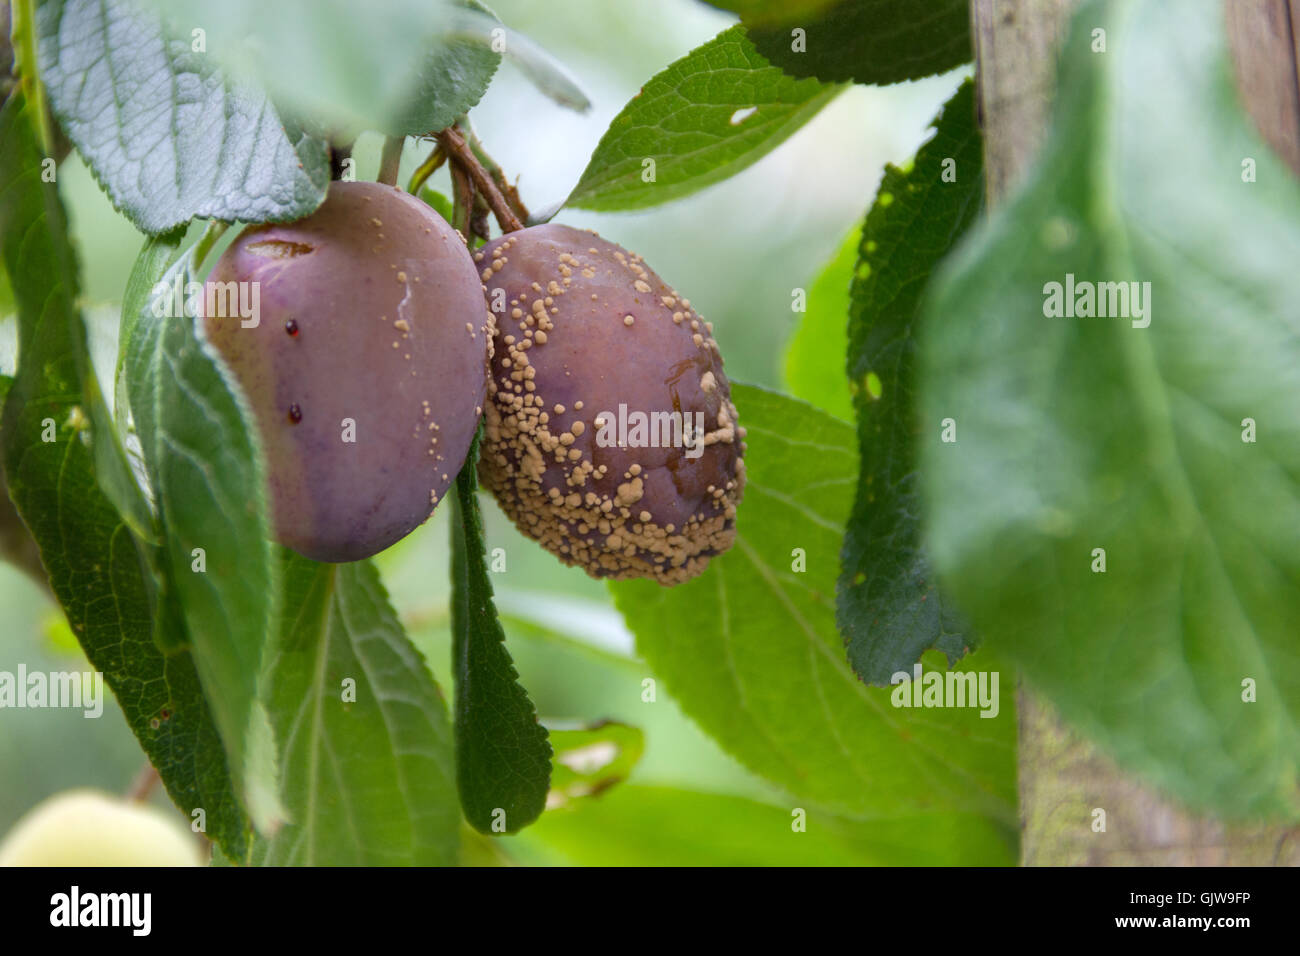 2 Plums ripening on a tree with mould - Stock Image